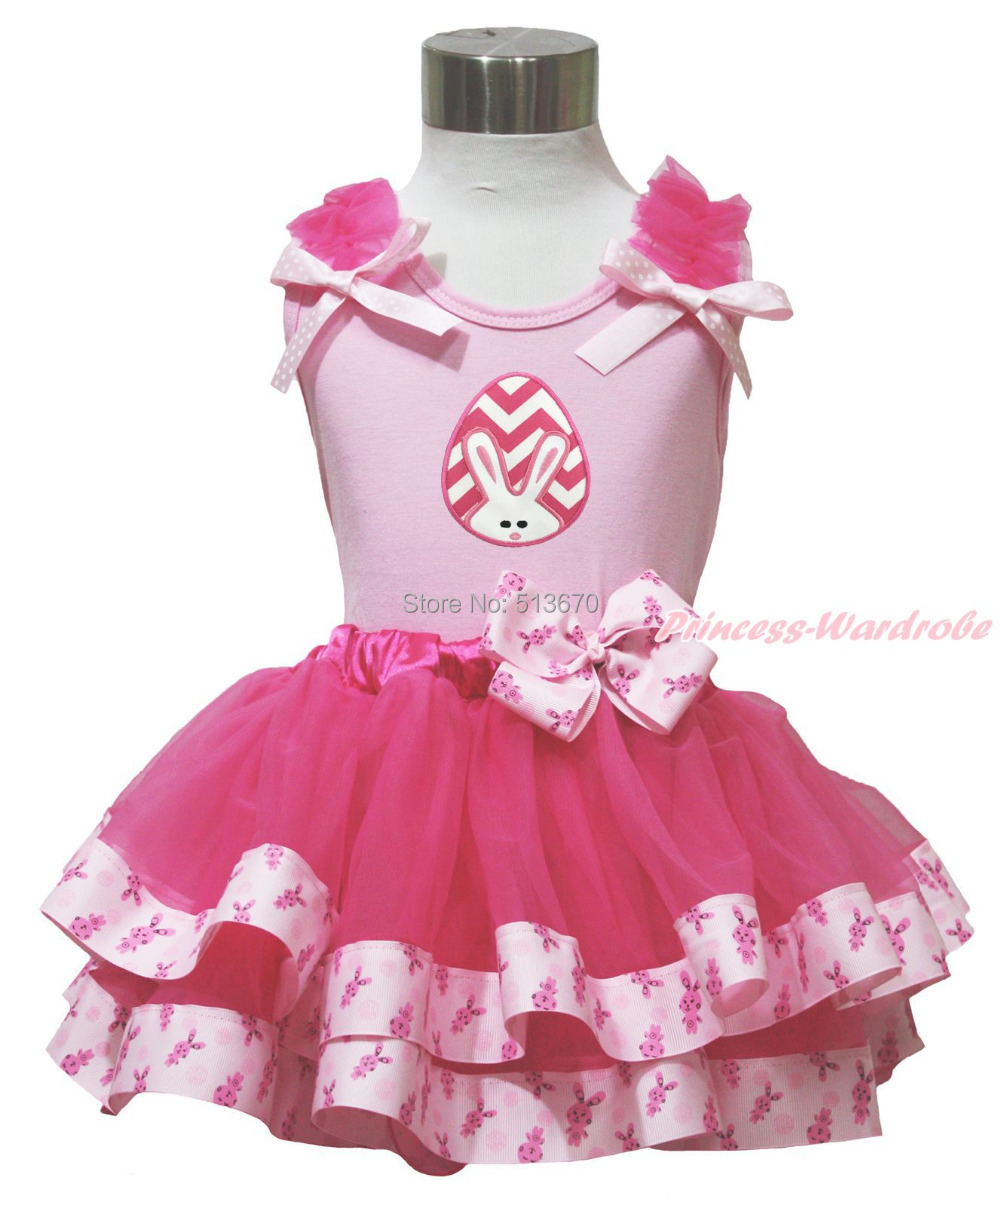 Easter Ruffle Bow Pink Top shirt Hot Pink Bunny Rabbit Satin Trim Easter Pink White Egg Bunny Baby Girl skirt Set 1-8Y MAPSA0491 baby golden brown pettiskirt golden ruffle brown bow white top shirt set 3 12m mapsa0289